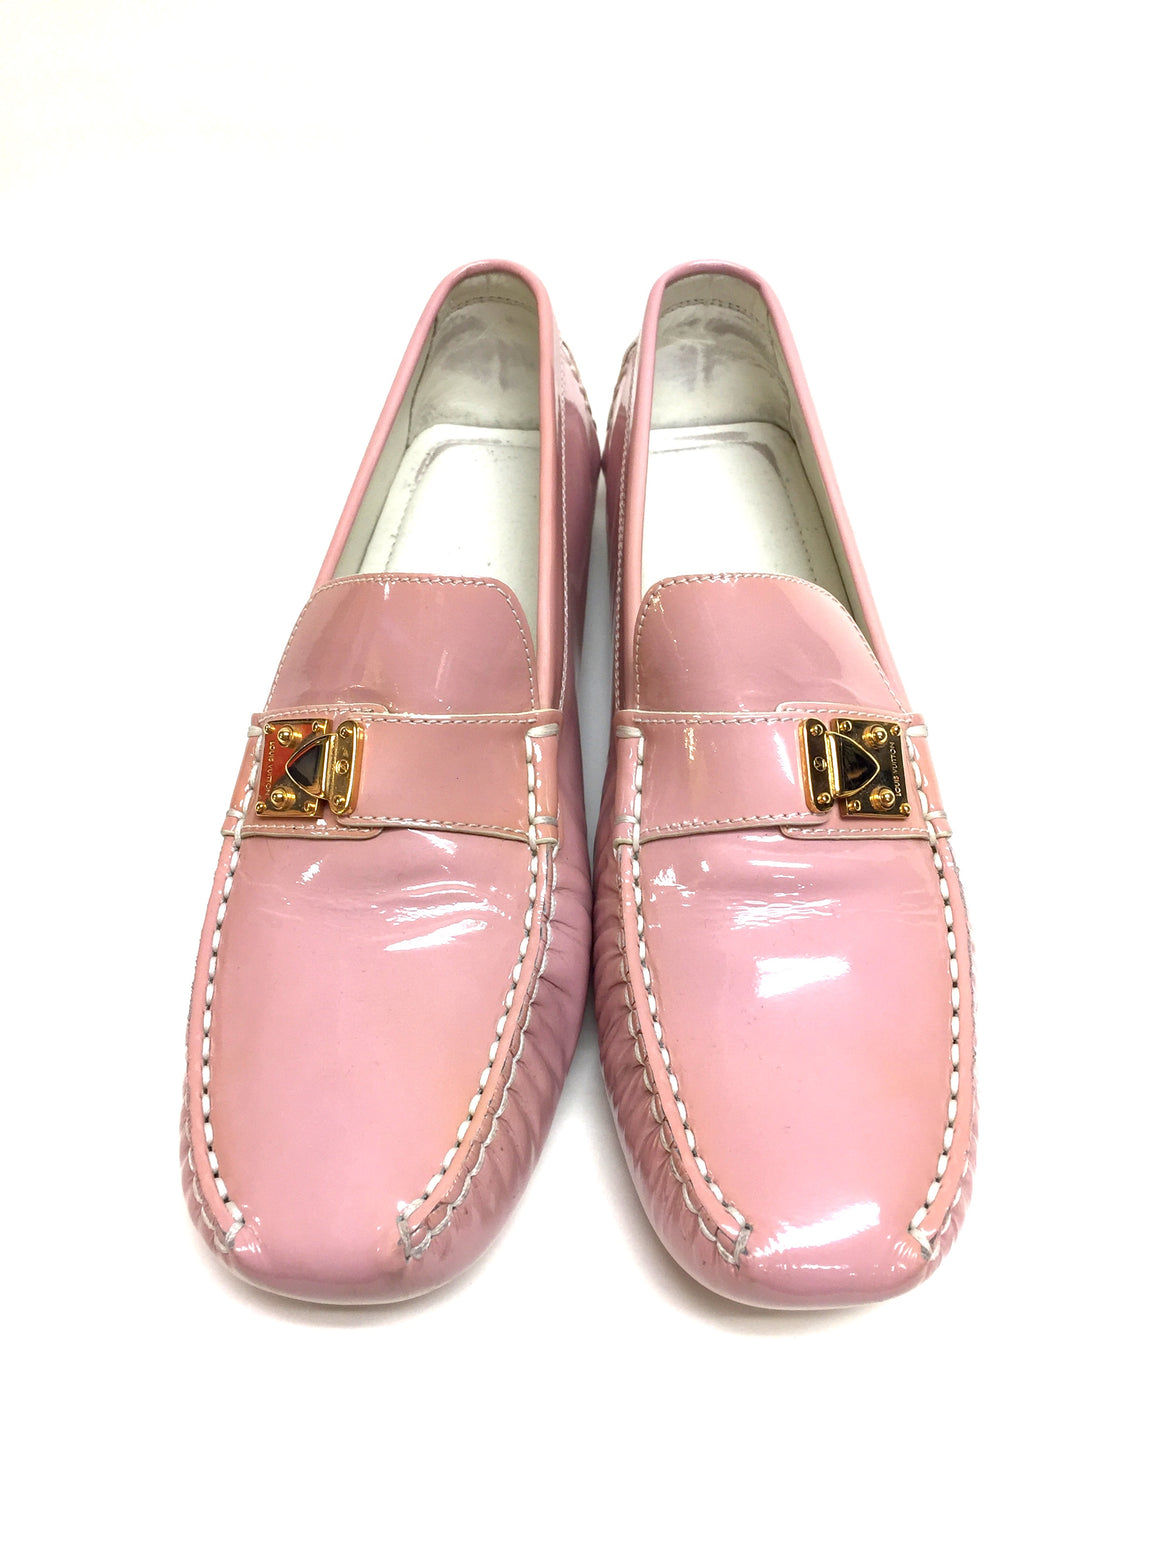 LOUIS VUITTON Pink Patent Leather LOMBOK Women Driving Loafers Shoes Shoes Size: 39.5